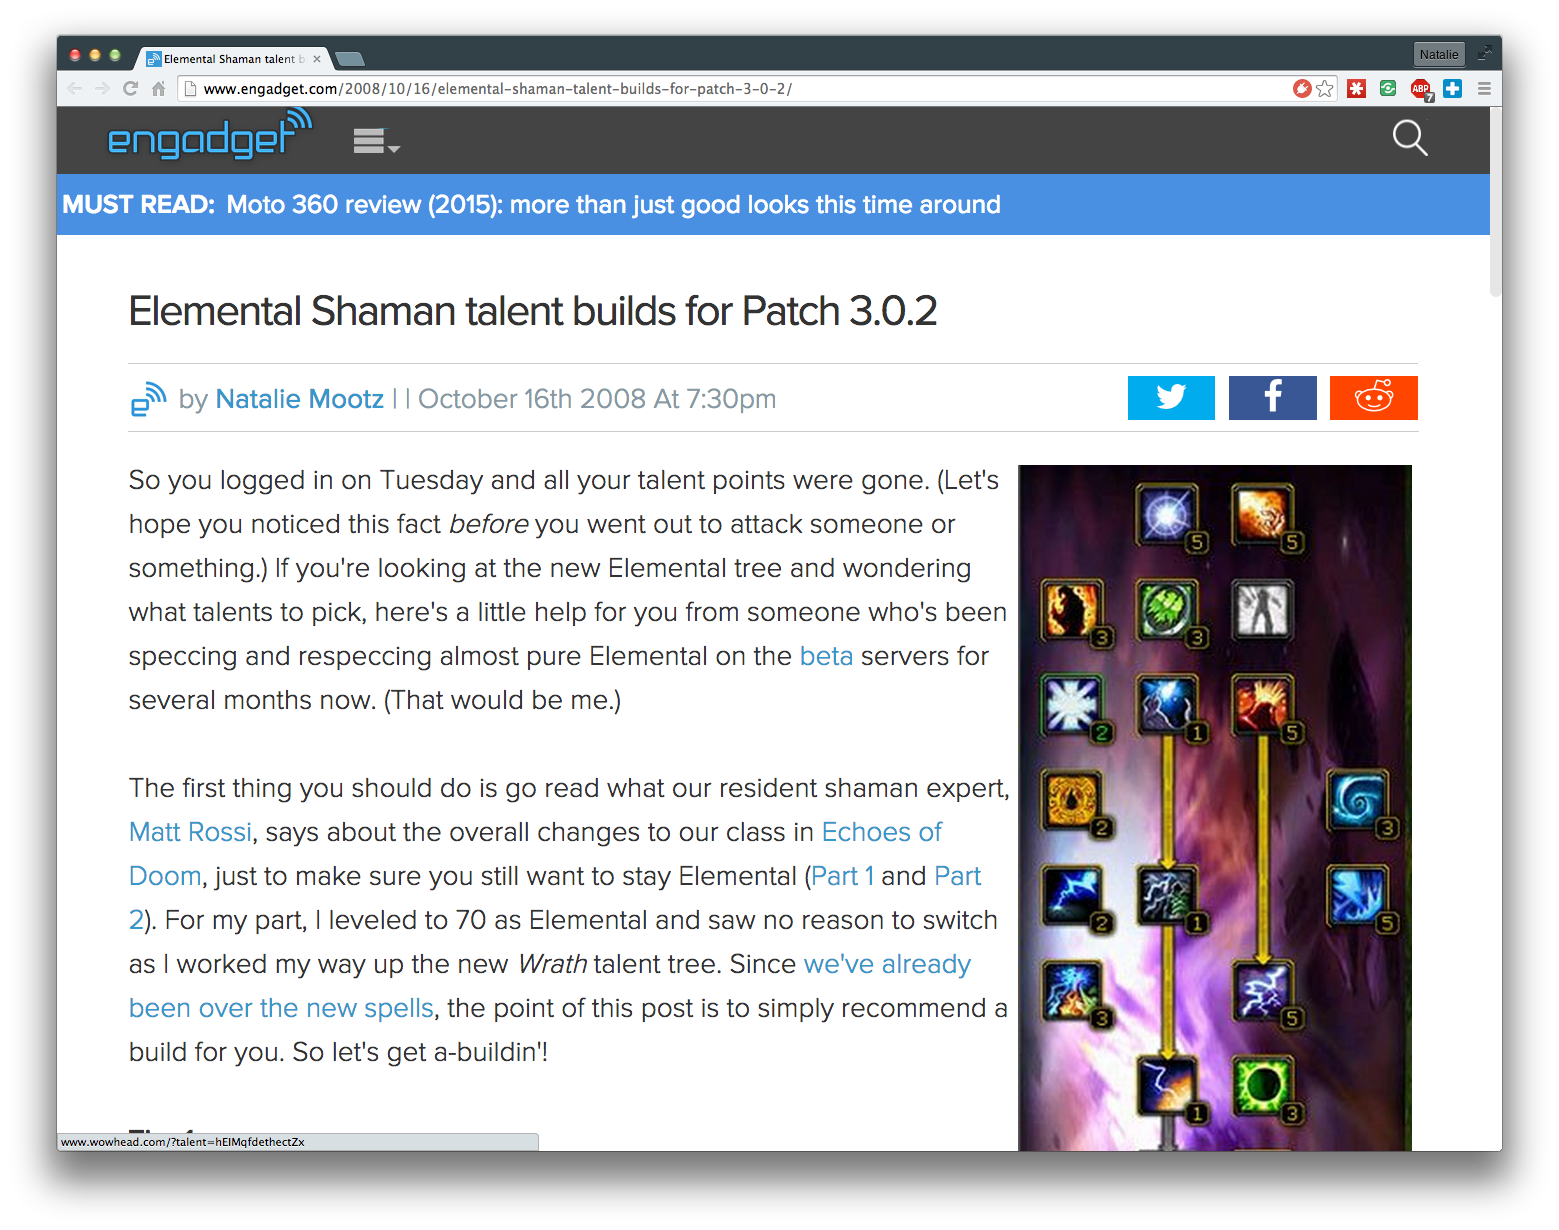 Elemental Shaman talent builds for Patch 3.0.2